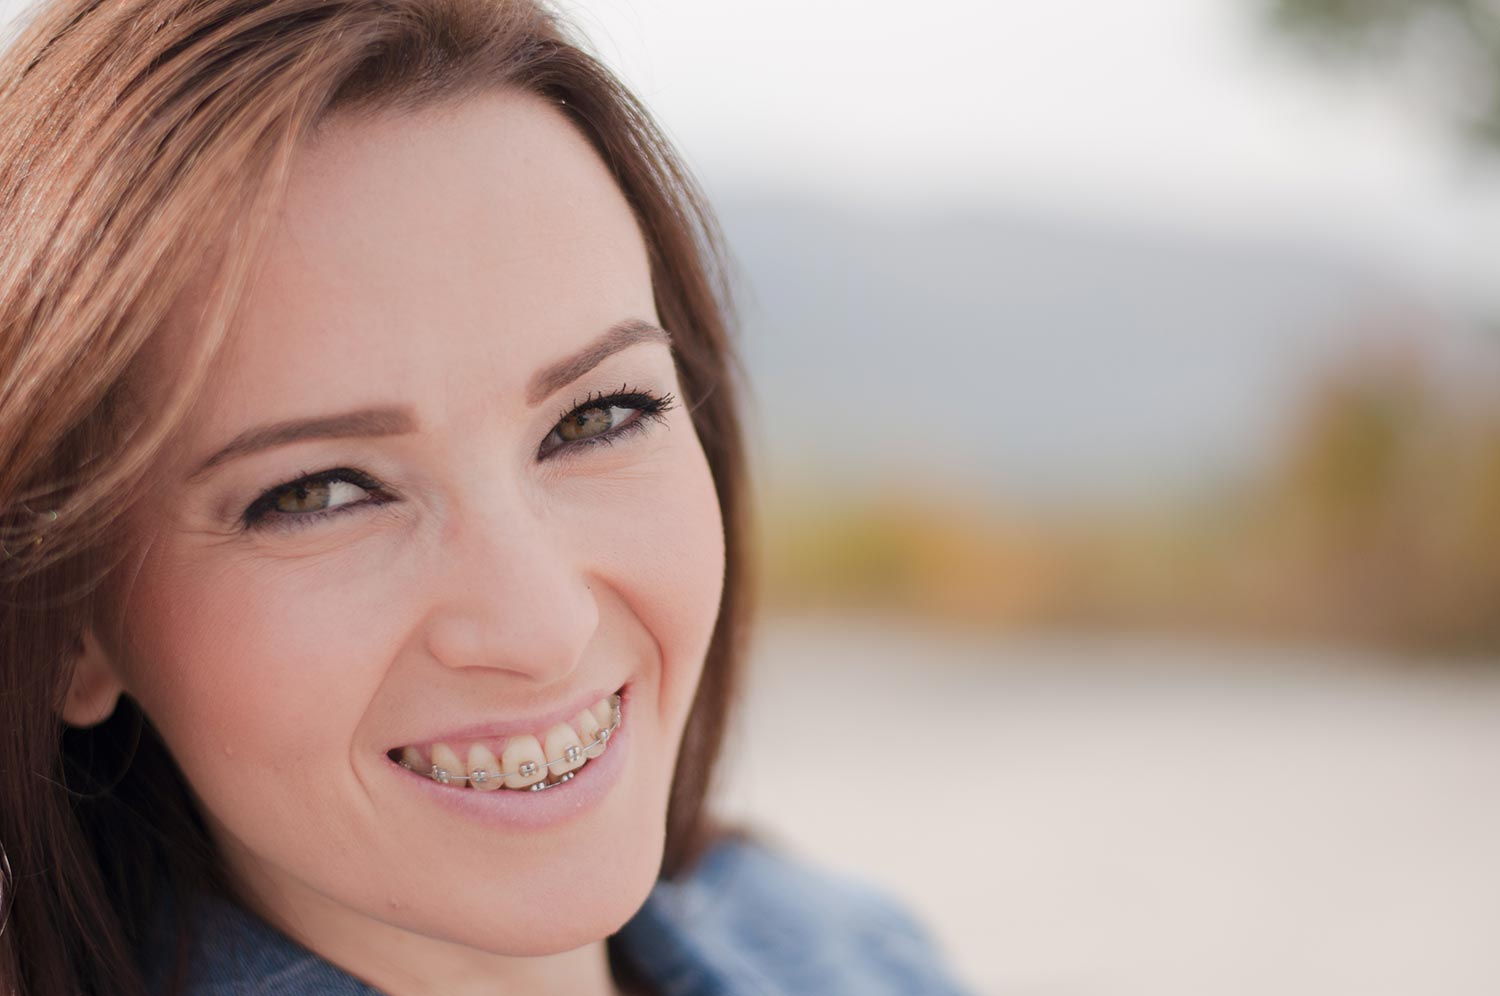 Young woman smiling with metal braces on her teeth